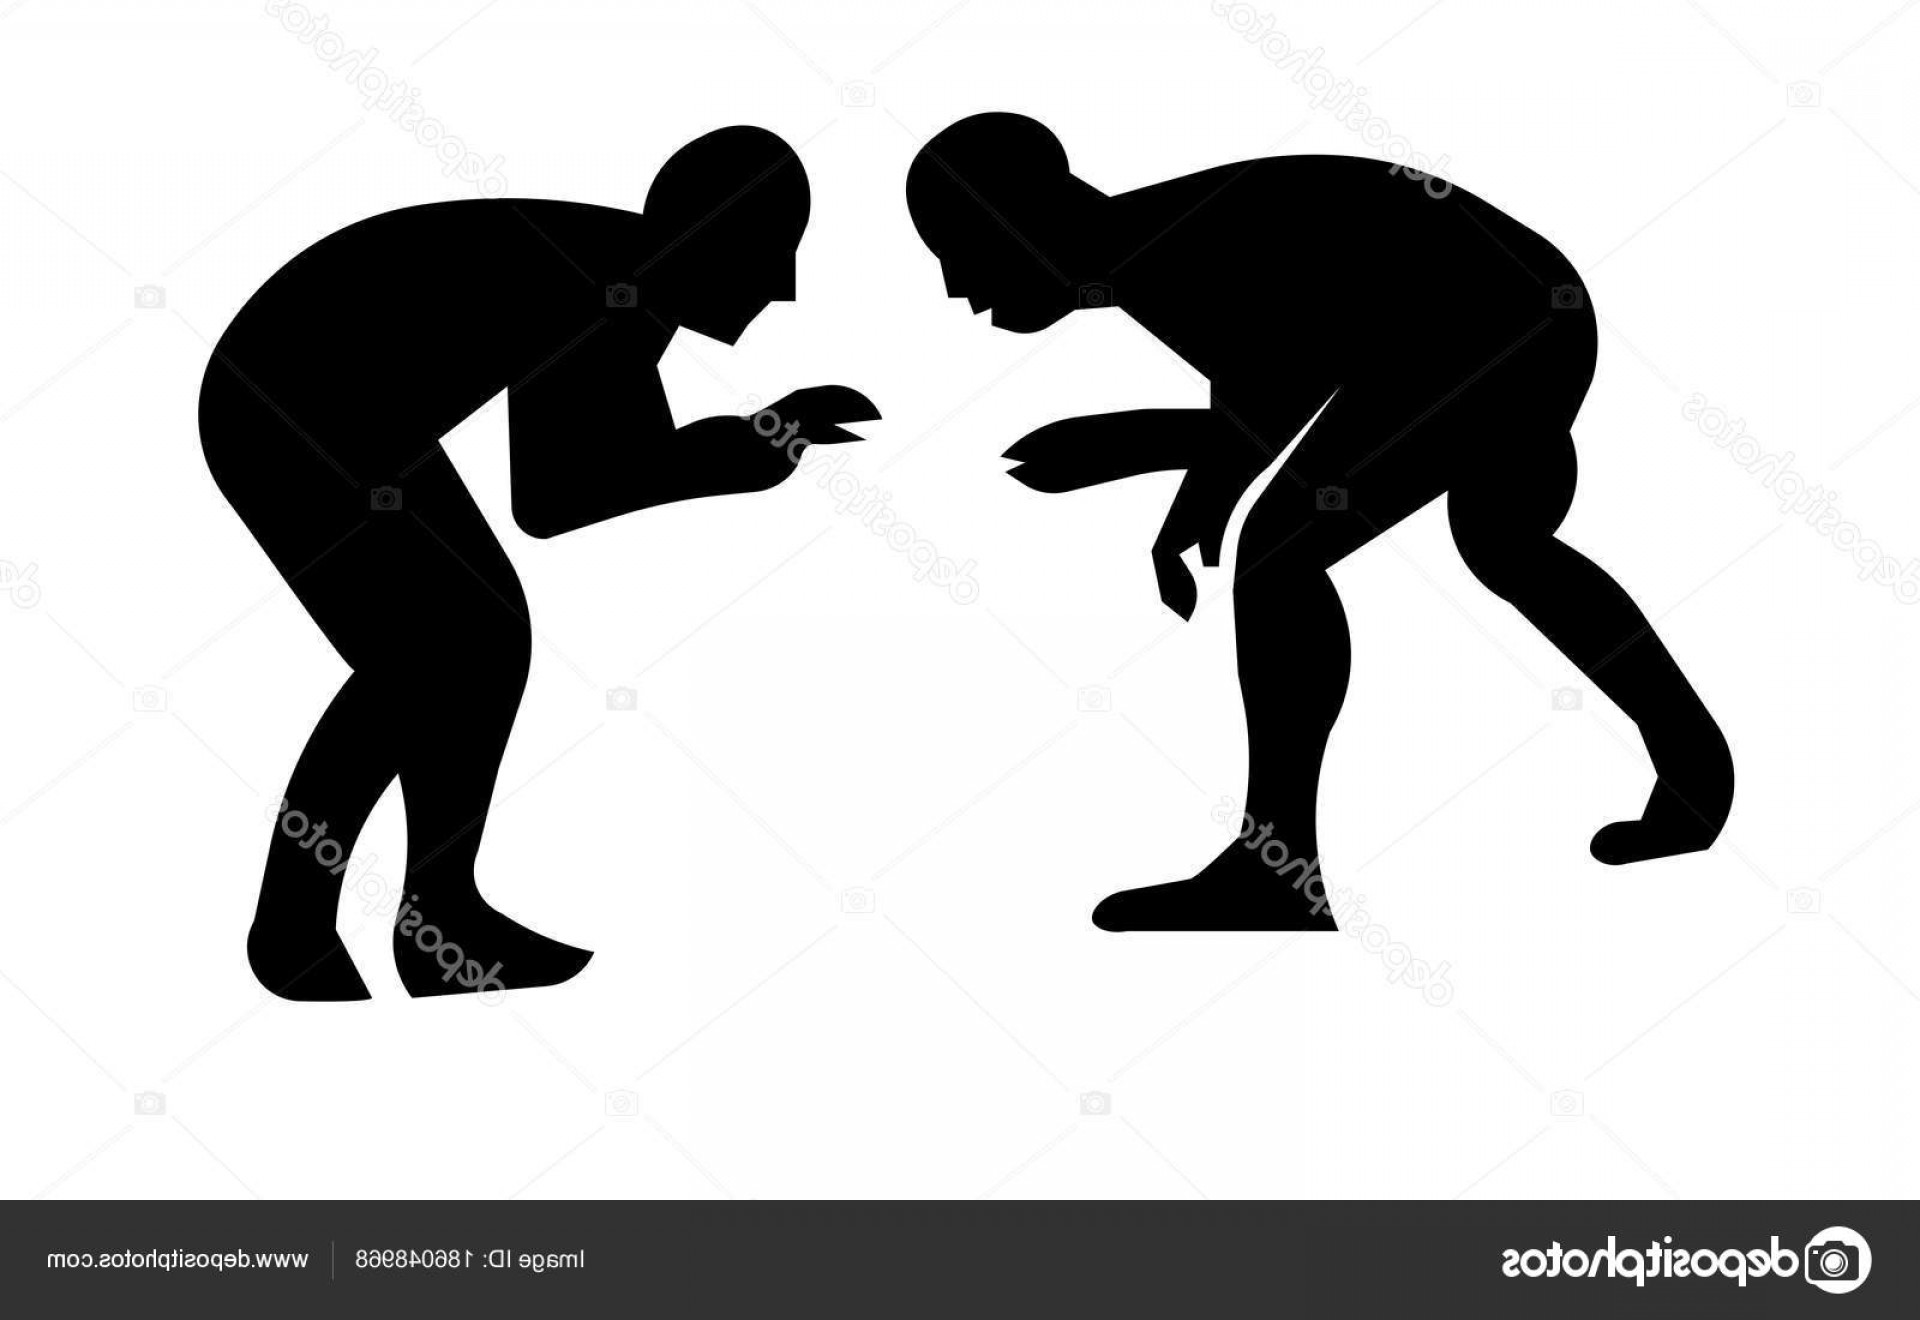 Stock Illustration Wrestling Silhouette Clip Art On.